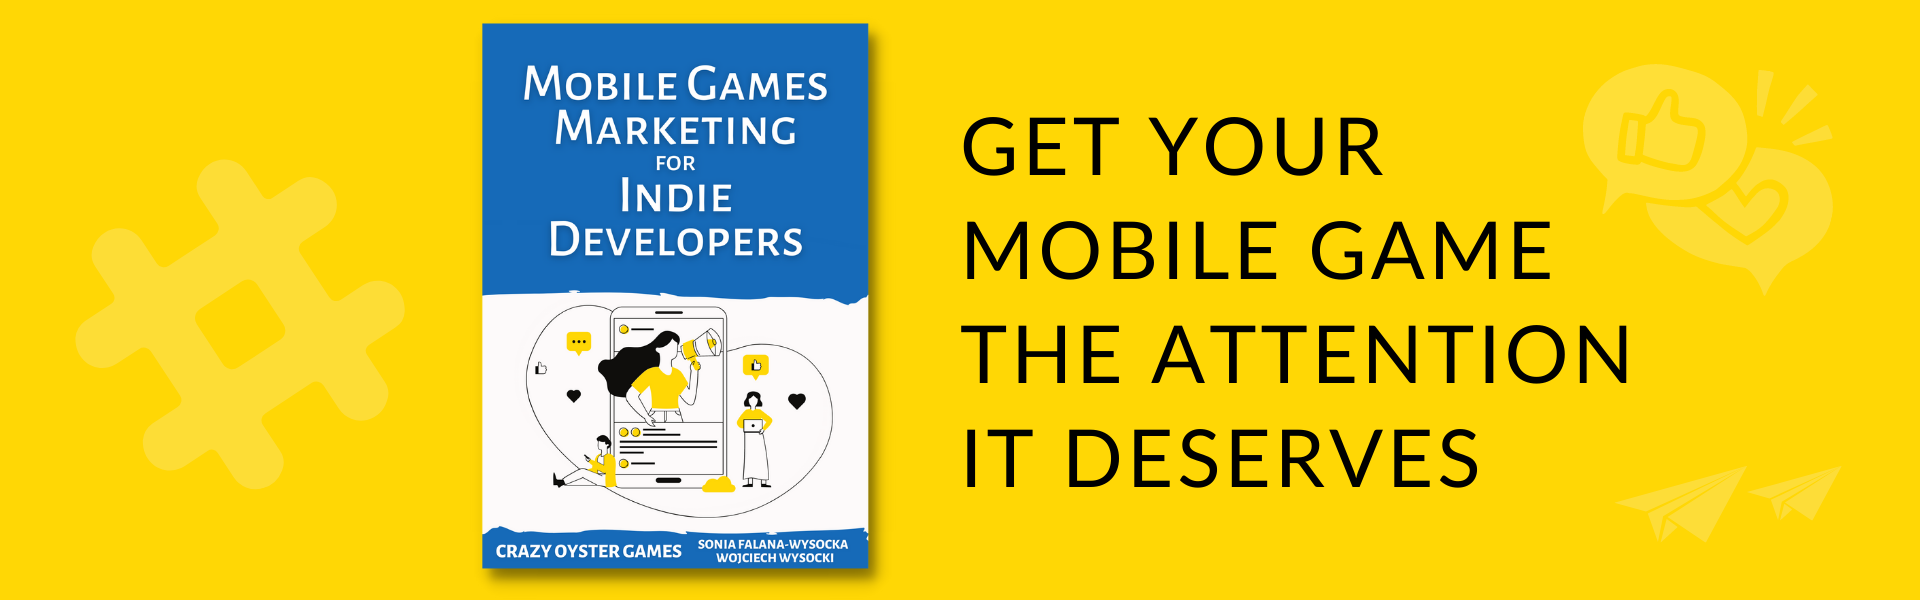 Mobile Games Marketing for Indie Developers